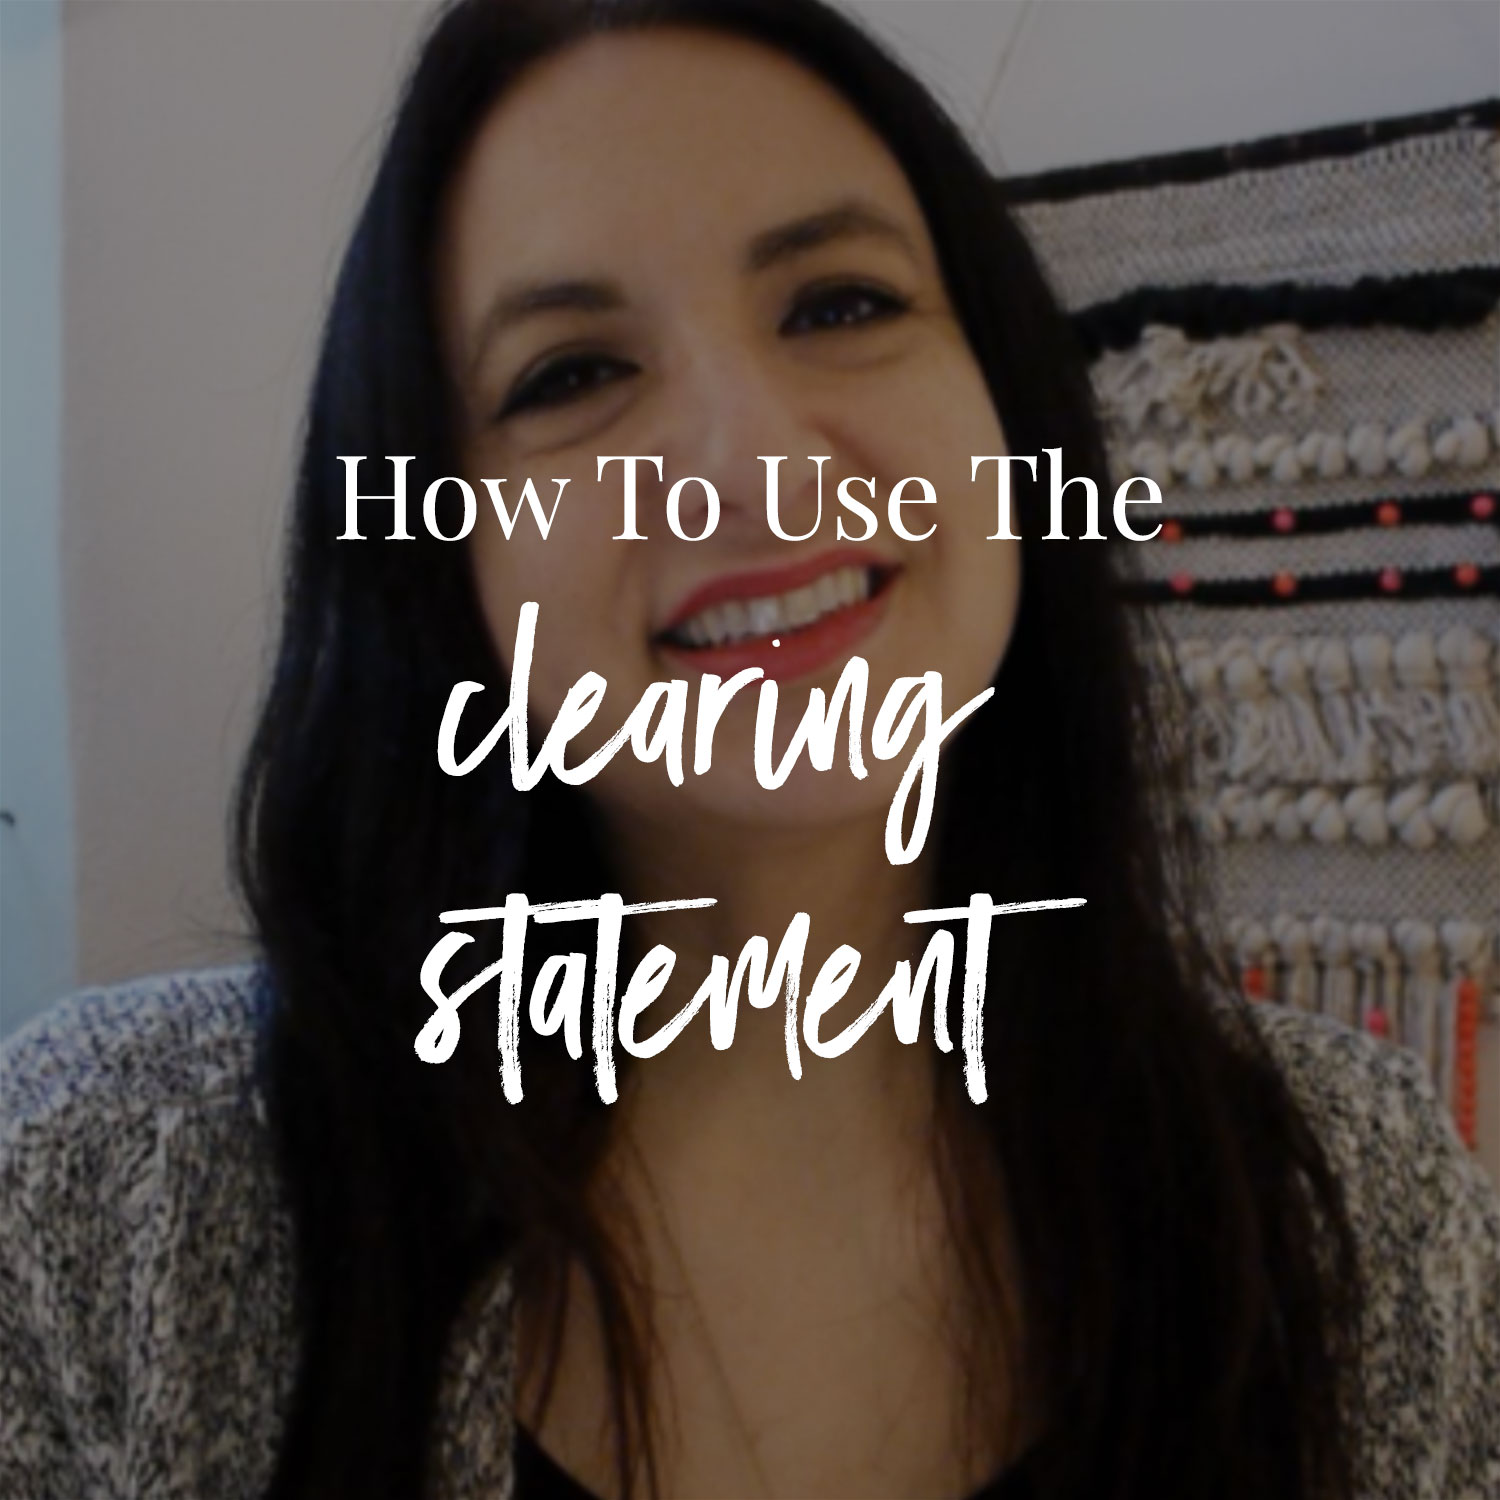 How To Use The Clearing Statement